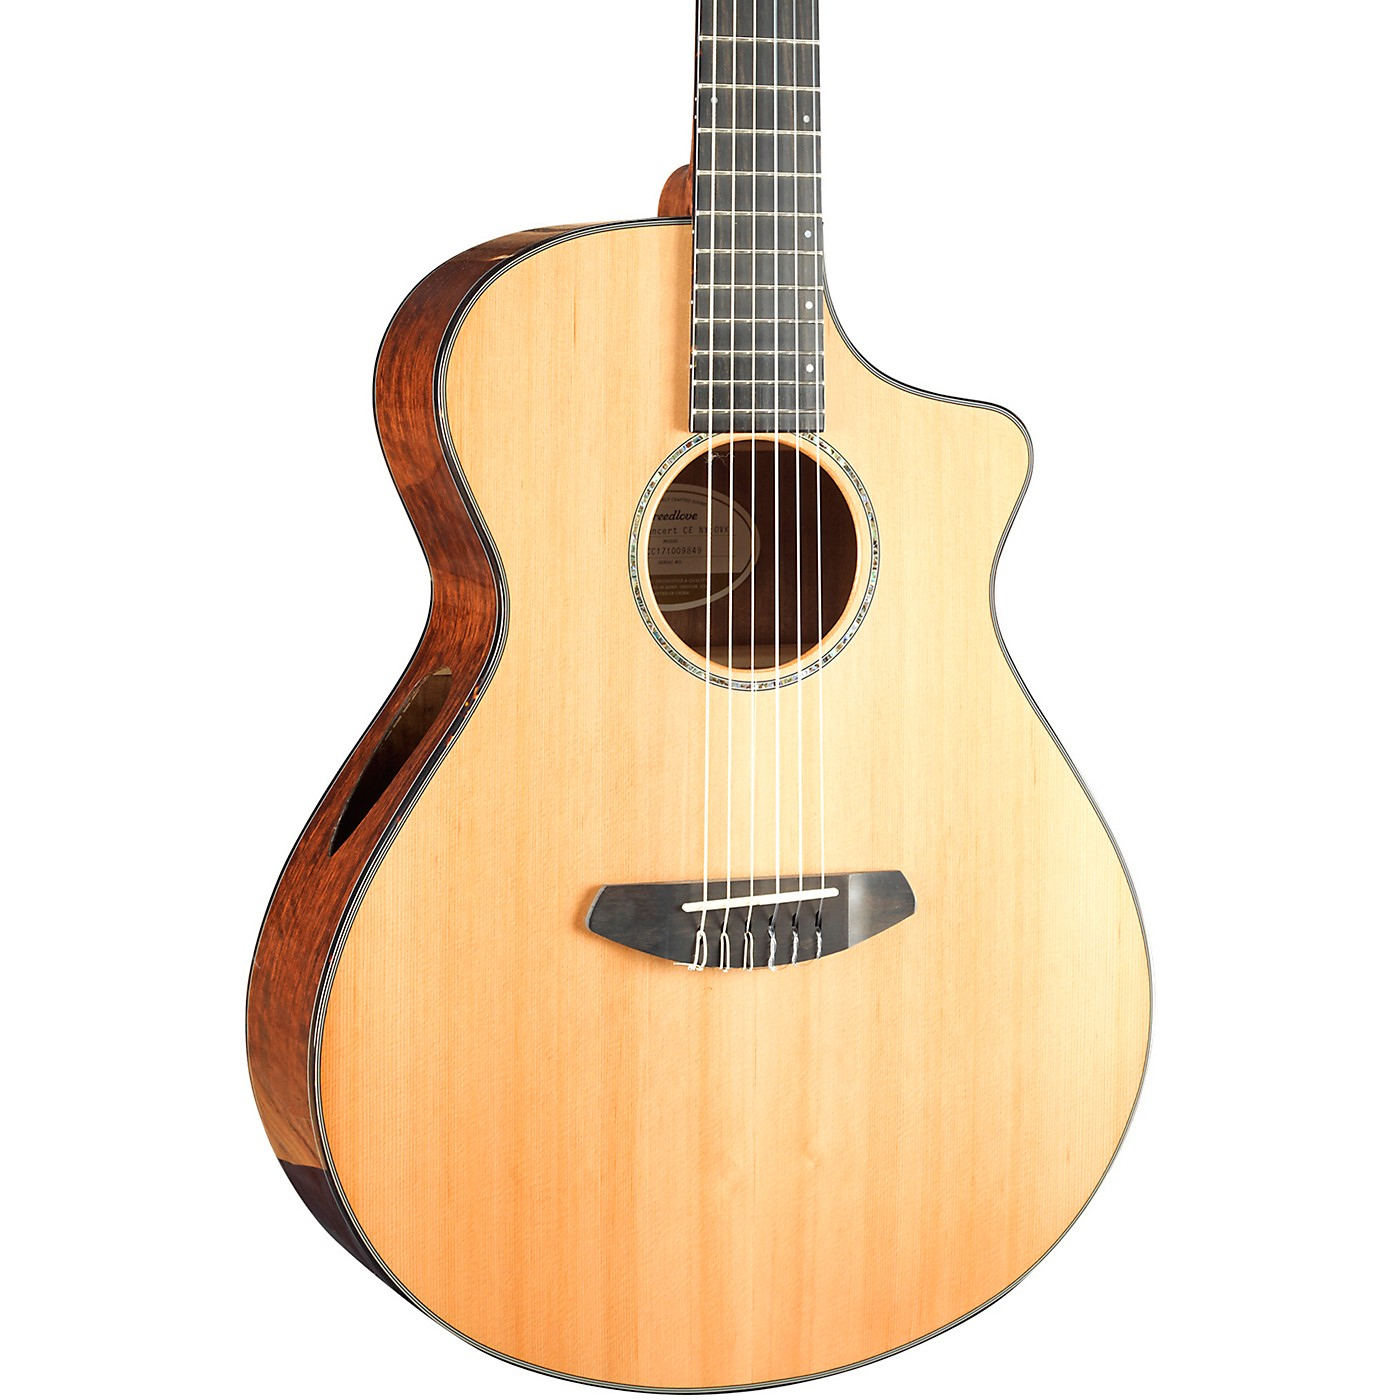 Breedlove Solo Concert Cutaway CE Nylon String Acoustic-Electric Guitar thumbnail